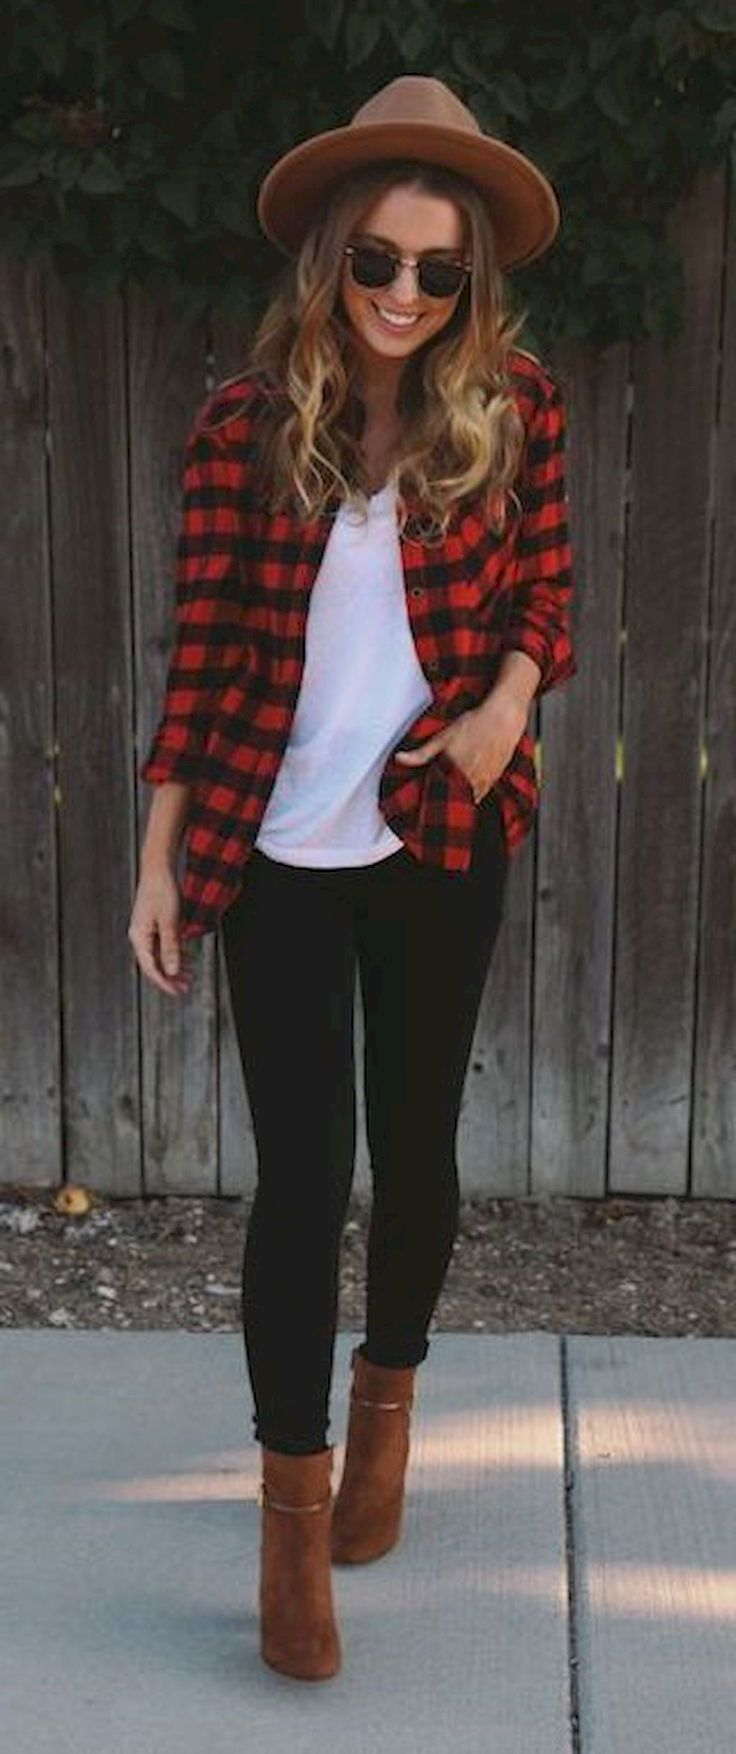 Adorable 95+ Chic Fall Outfits Ideas for Women https://bitecloth.com/2017/12/03/95-chic-fall-outfits-ideas-women/